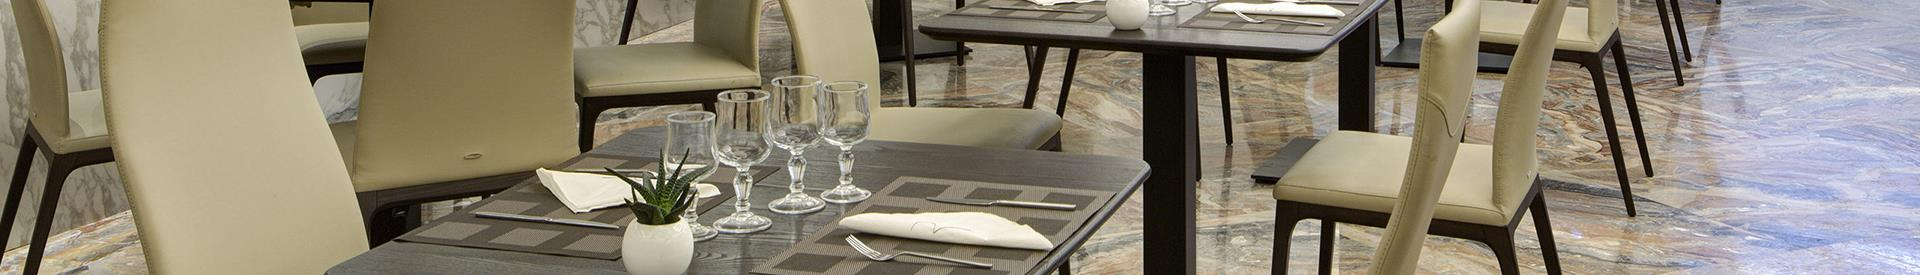 Looking for a hotel for your stay in TEMP_City (XX)? Book/reserve at the Best Western Hotel Universo